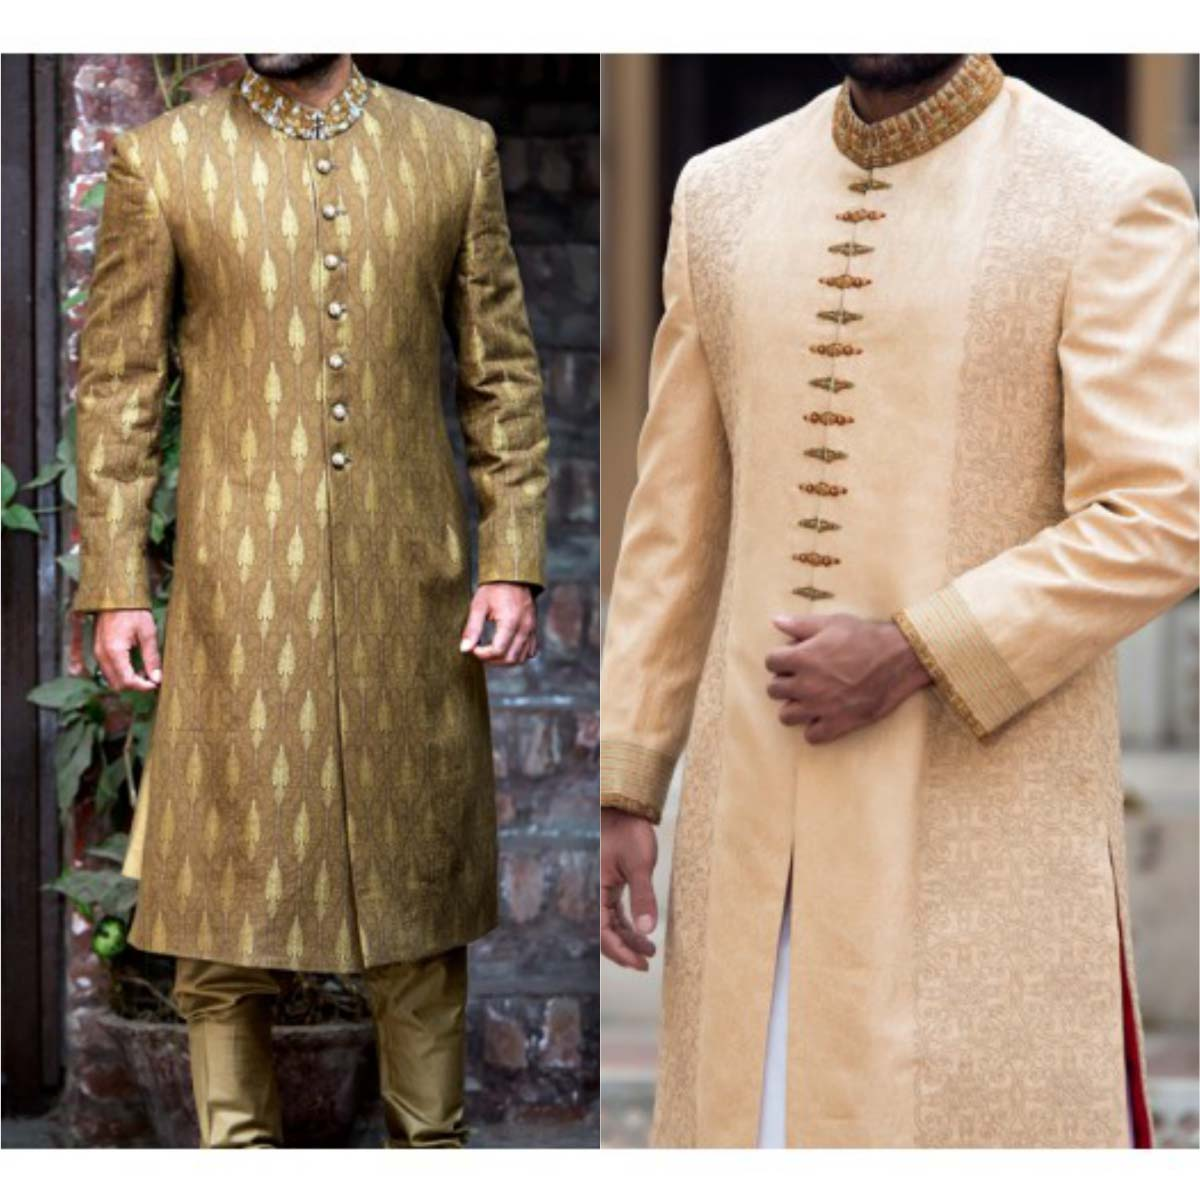 j-j-junaid-jamshed-shwerwanis-design-for-groom-2016